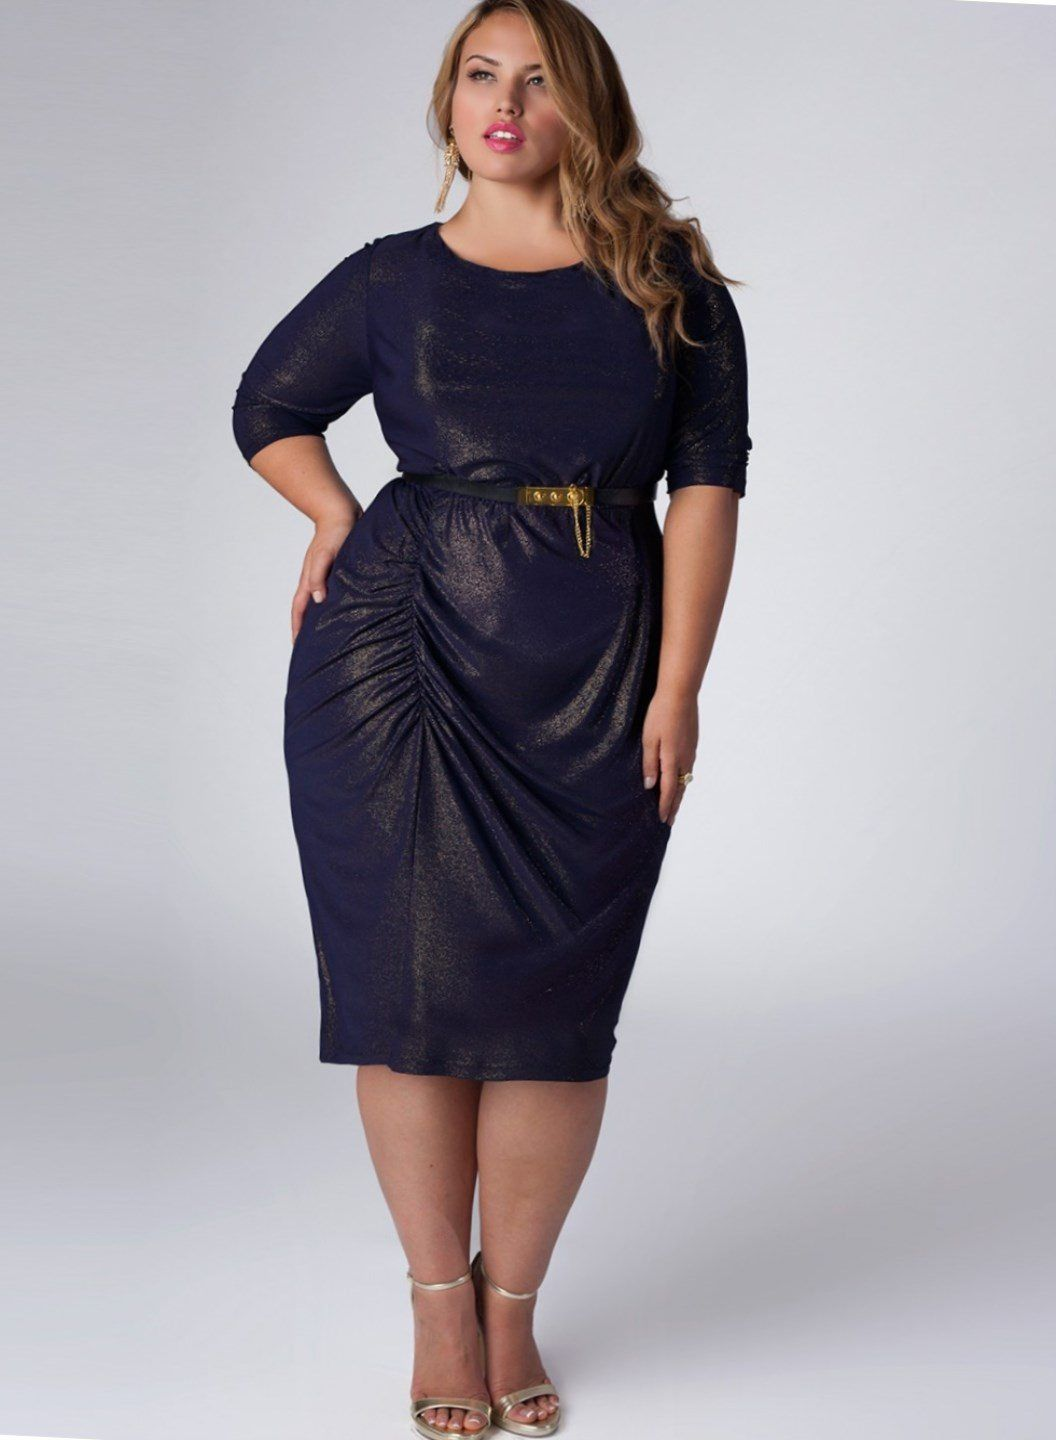 Modern plus size cocktail dresses